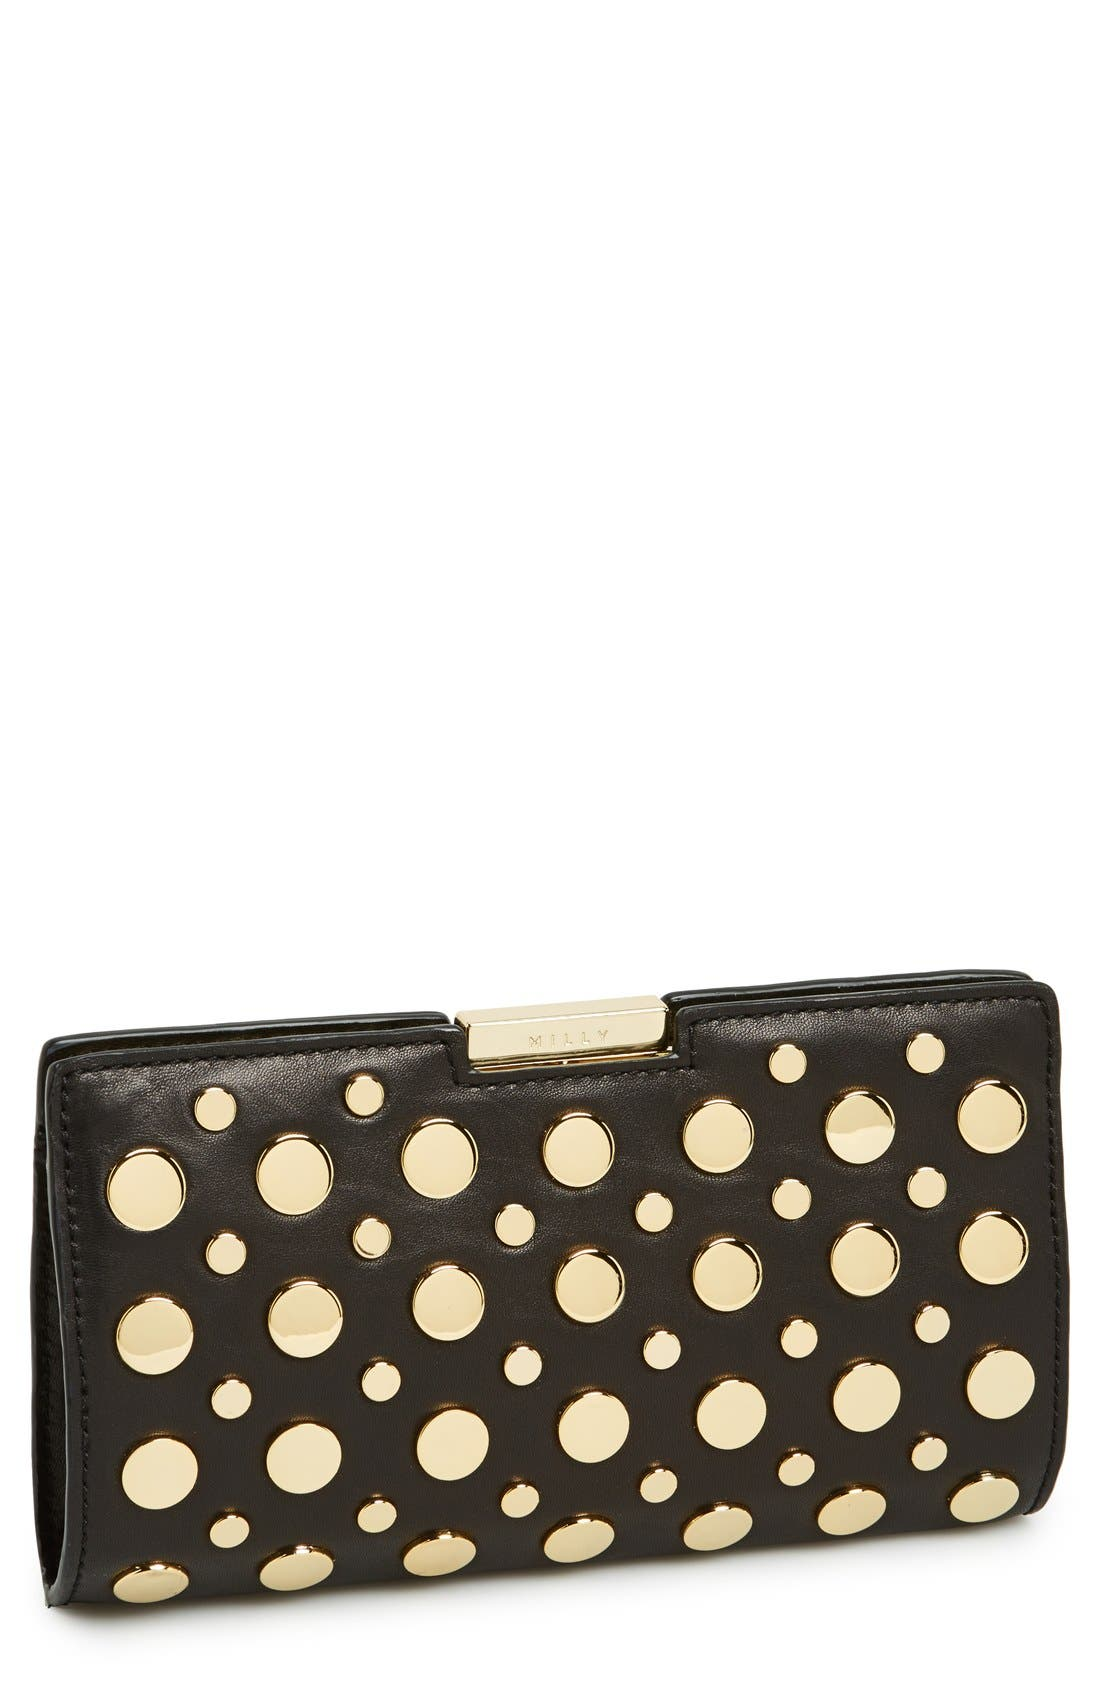 Alternate Image 1 Selected - Milly 'Small Cara' Frame Clutch